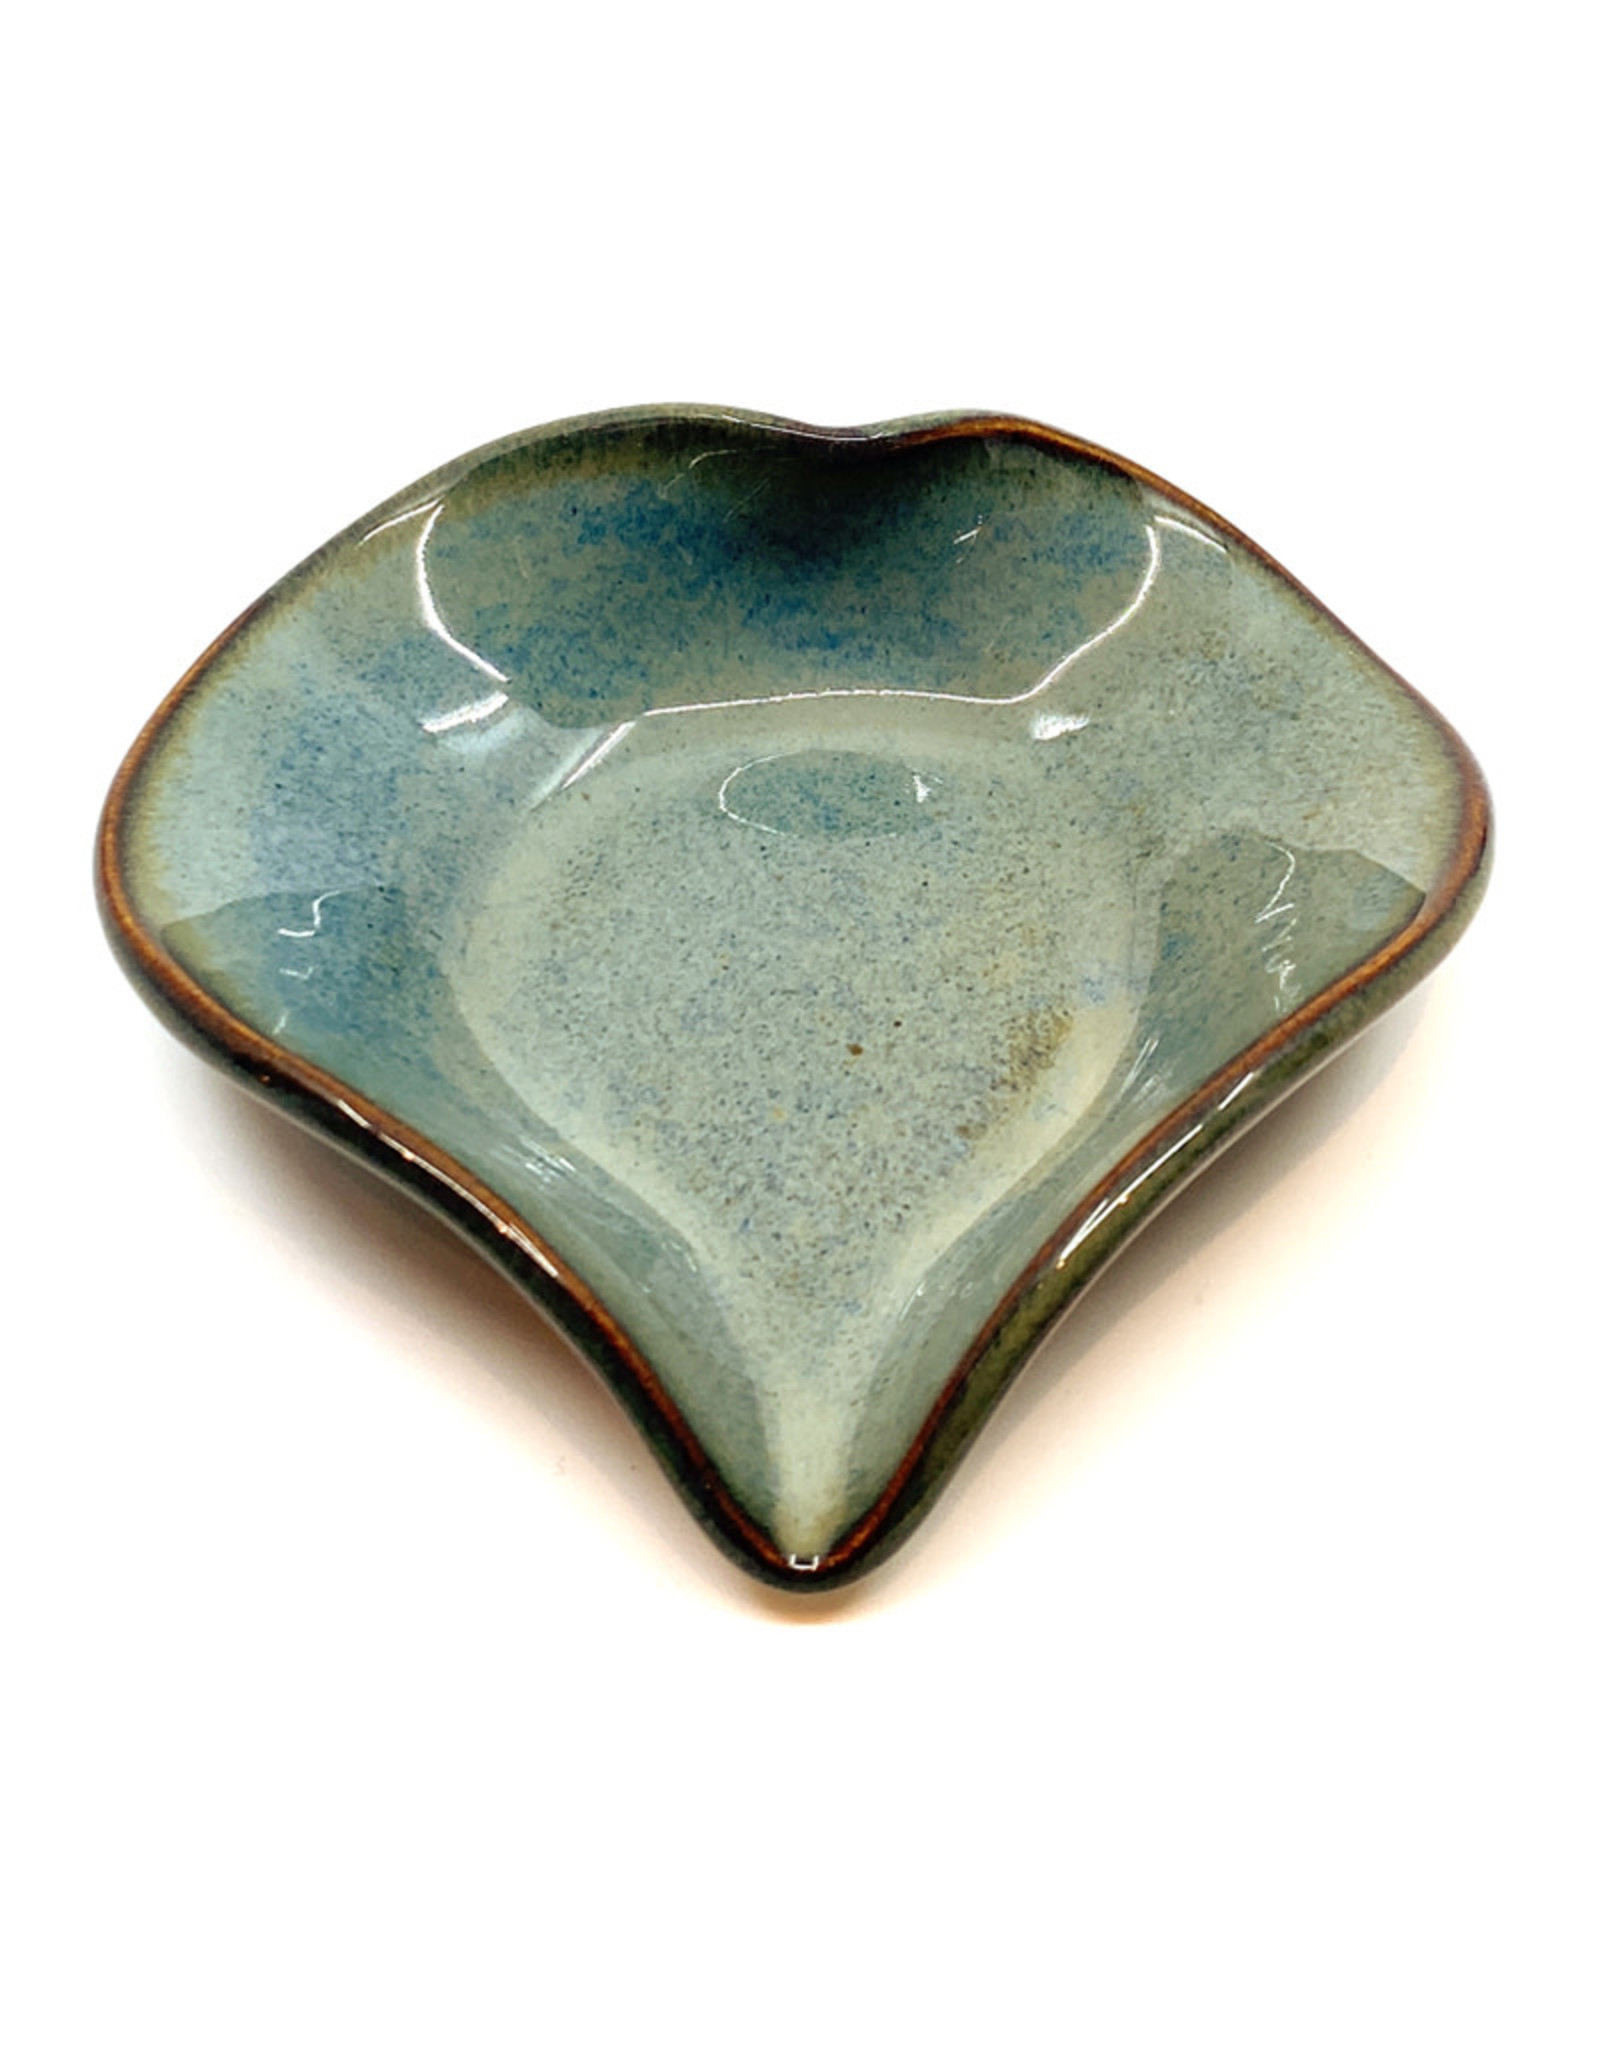 HILBORN POTTERY BLUE MEDLEY HEART DISH WITH SPOON